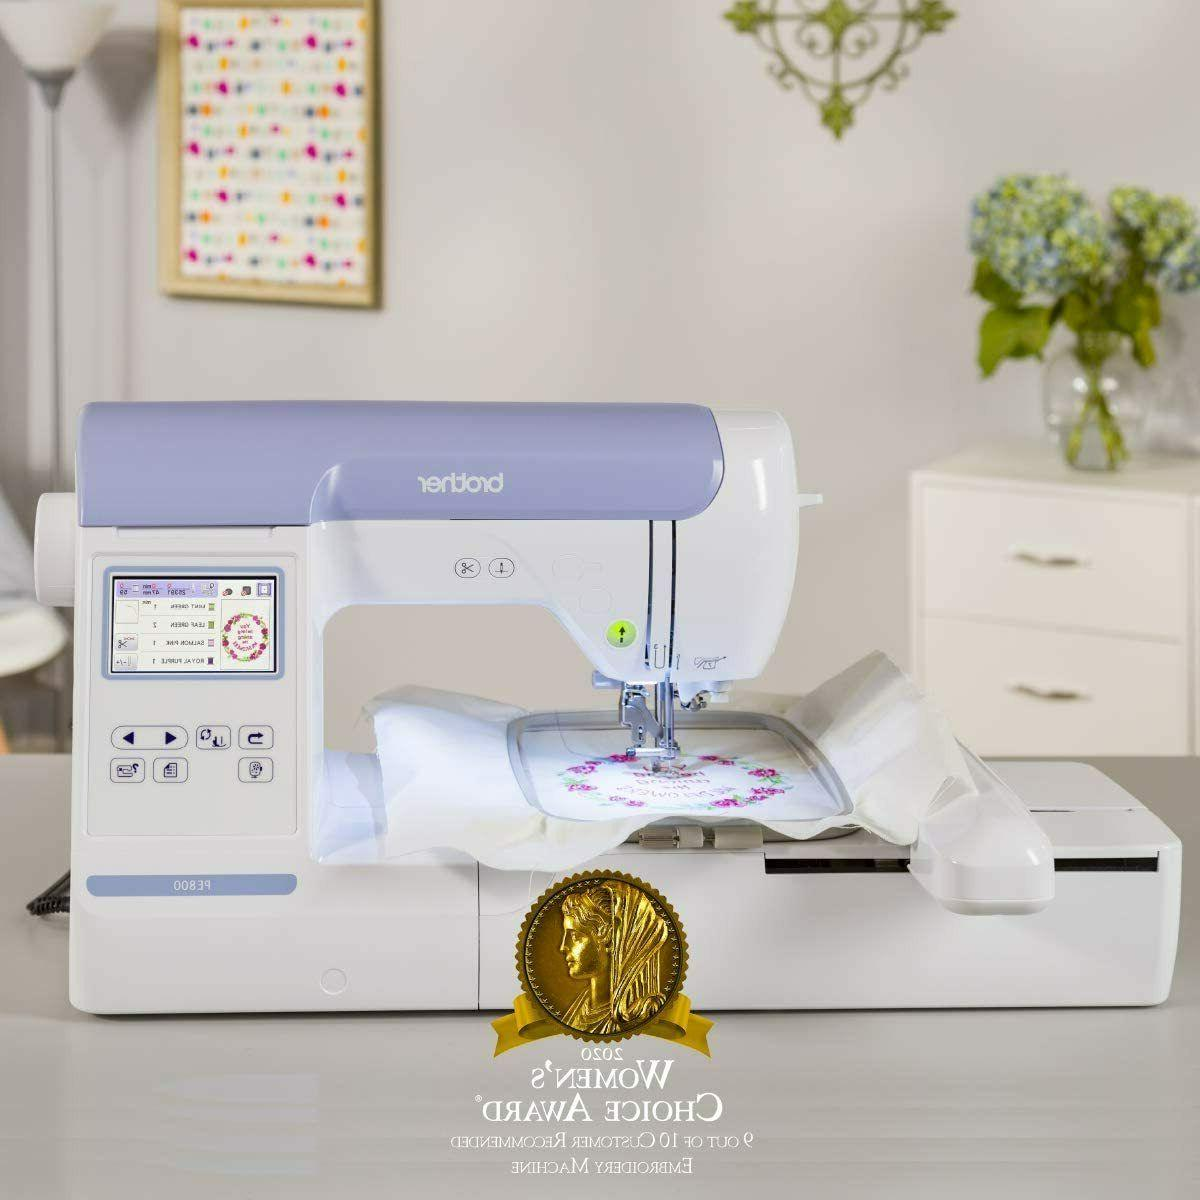 BRAND PE800 Embroidery Built-in Designs